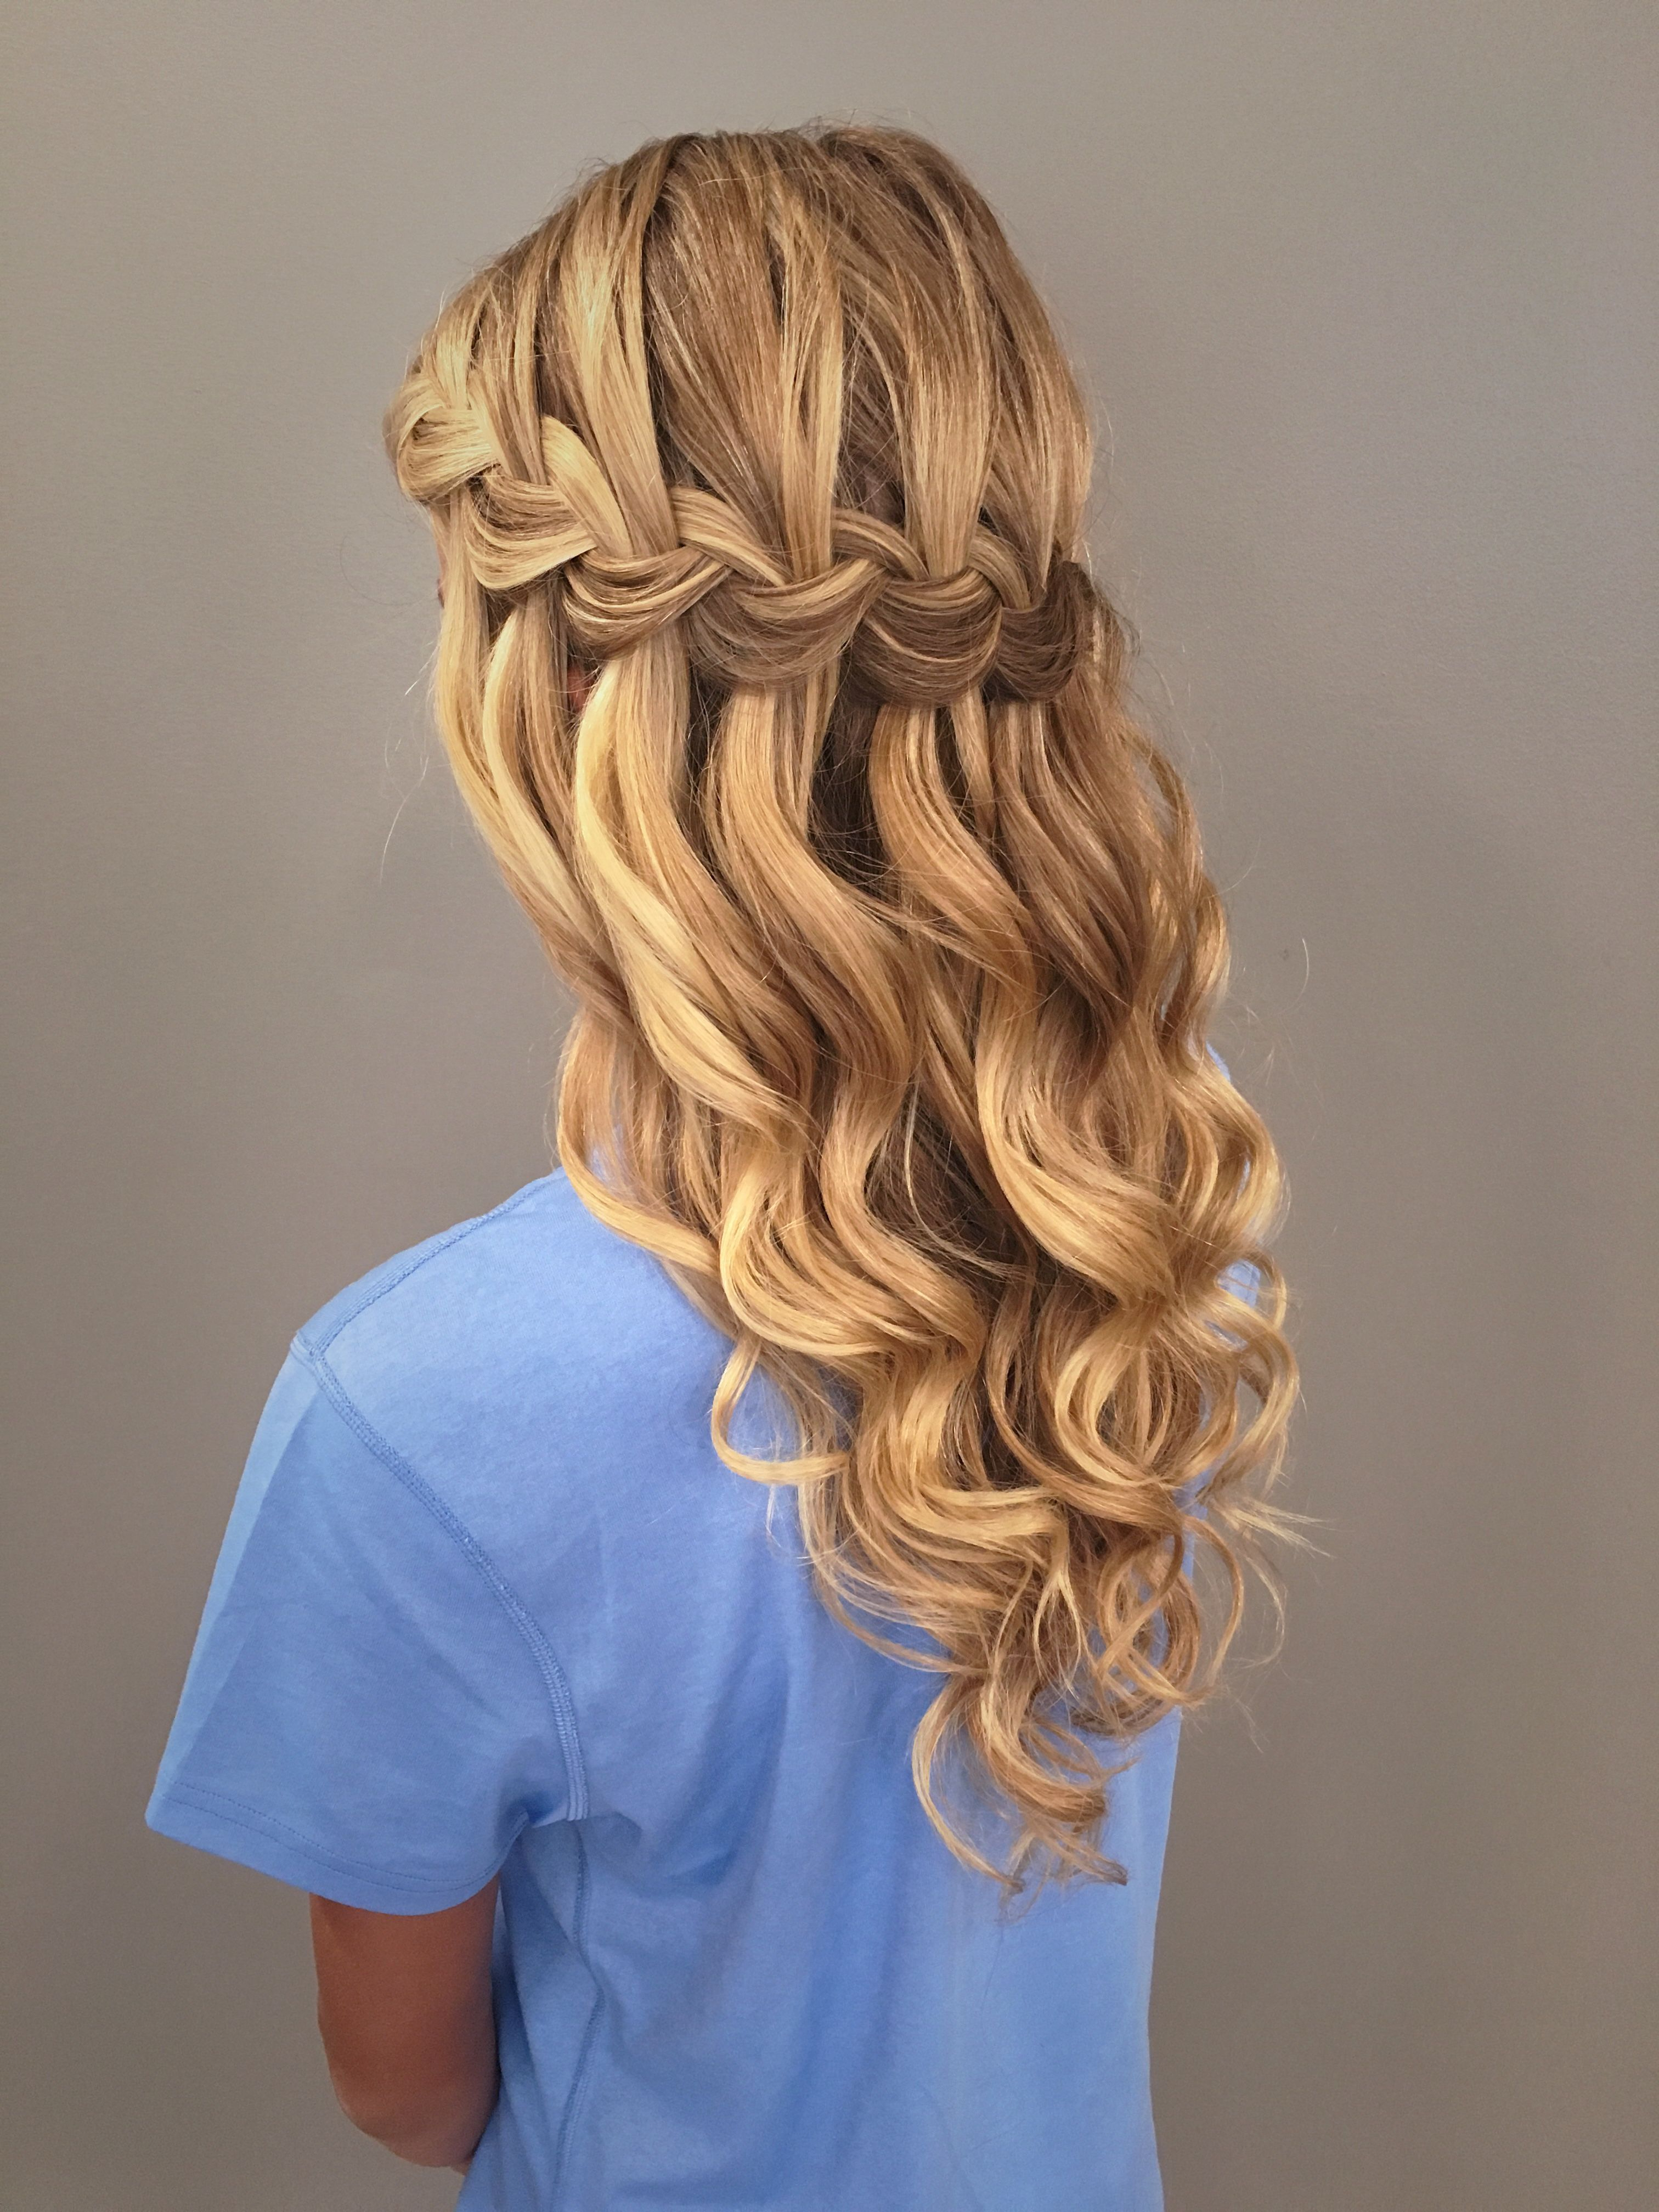 Waterfall Braid With Mermaid Waves! Great Bridal, Prom, Or Intended For Well Liked Half Prom Updos With Bangs And Braided Headband (Gallery 10 of 20)